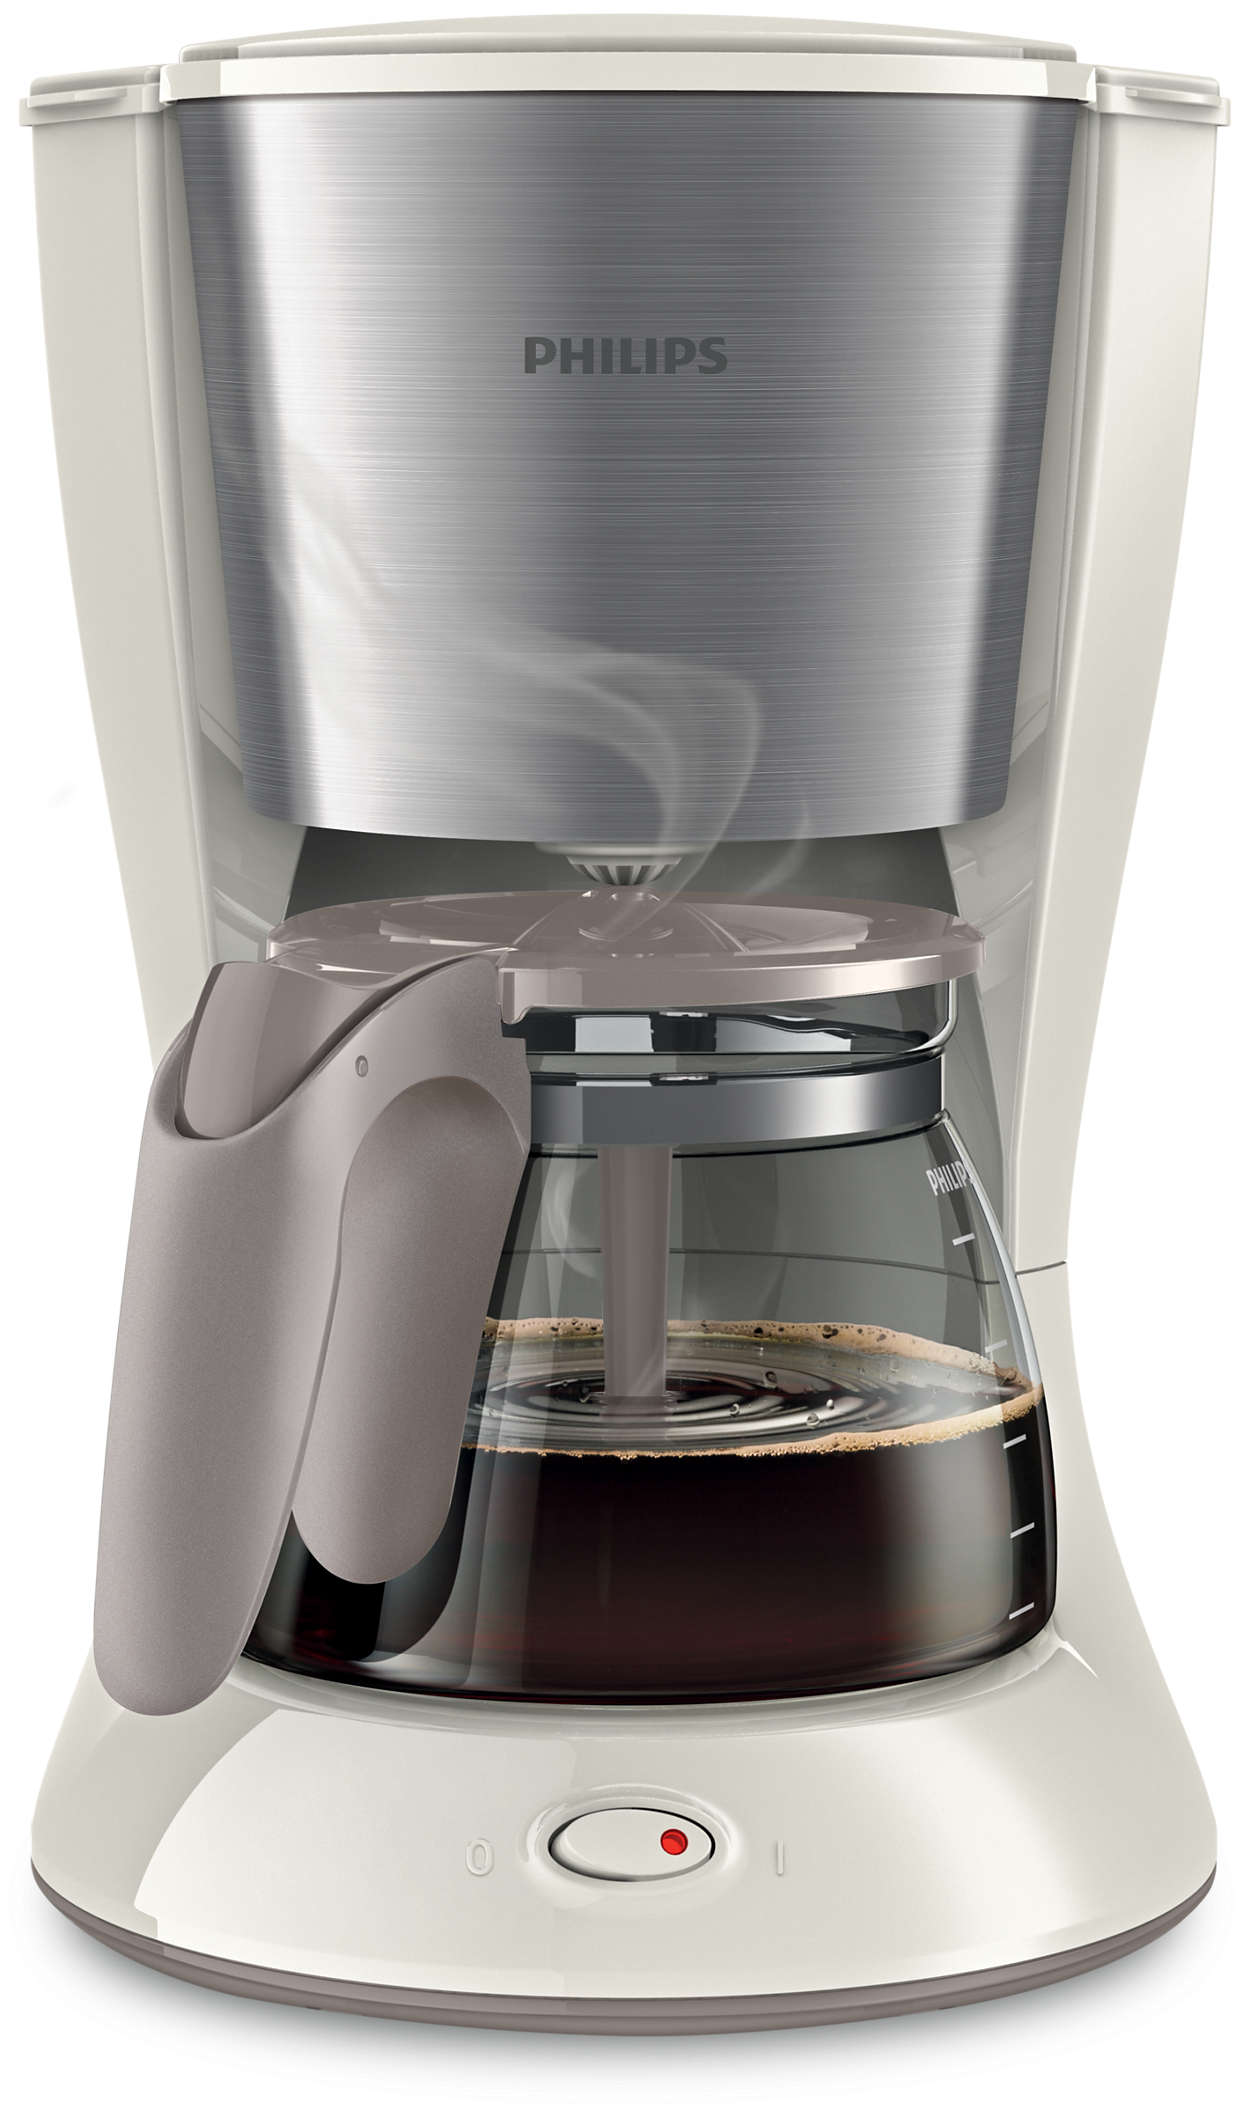 philips hd7462 01 kaffeemaschine wei metall 1 2 l aroma twister ebay. Black Bedroom Furniture Sets. Home Design Ideas